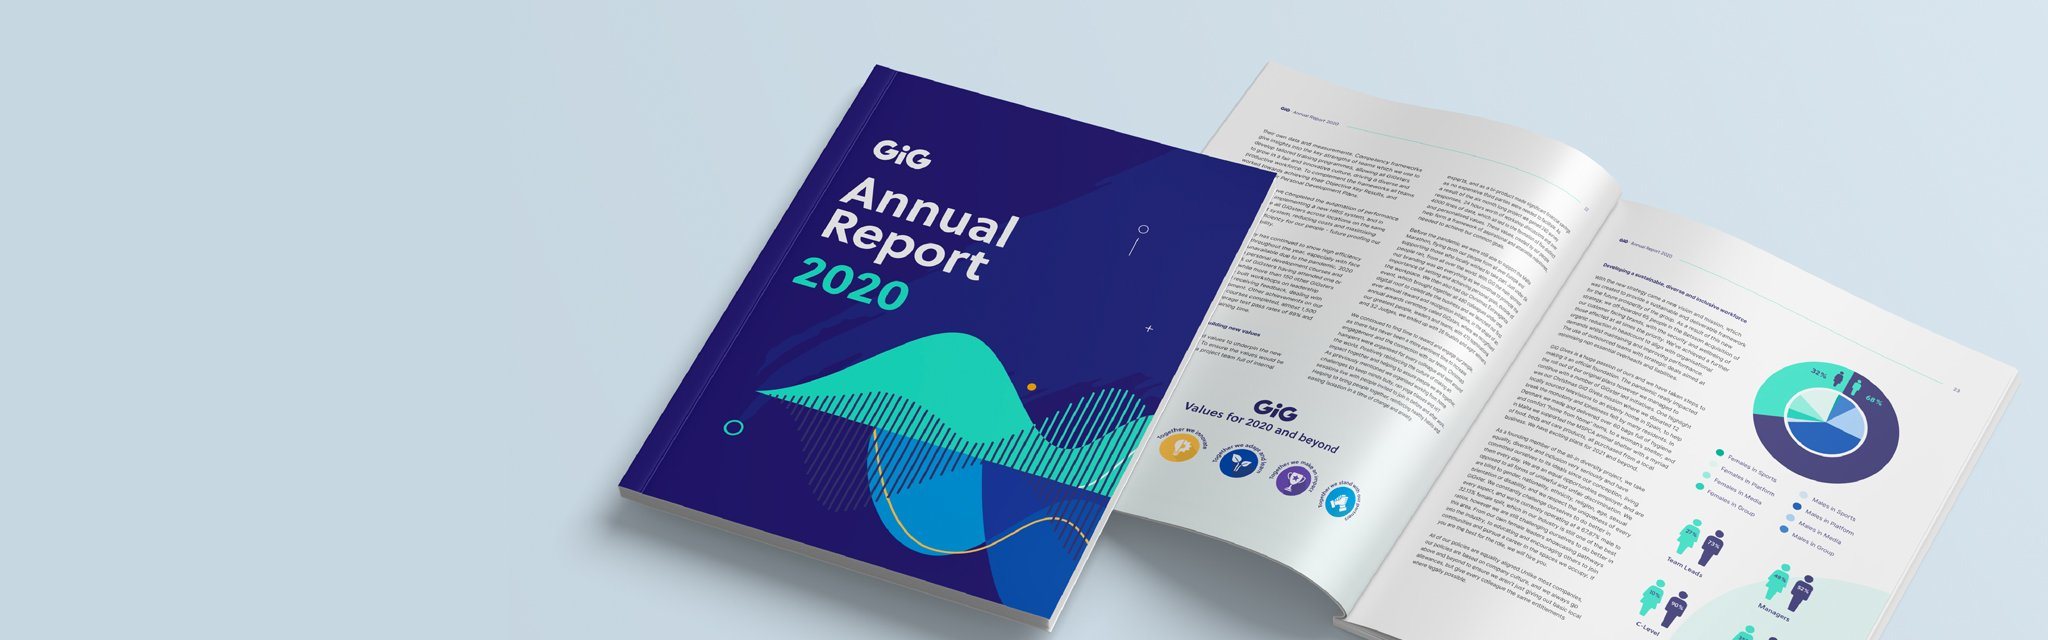 GiG Annual report